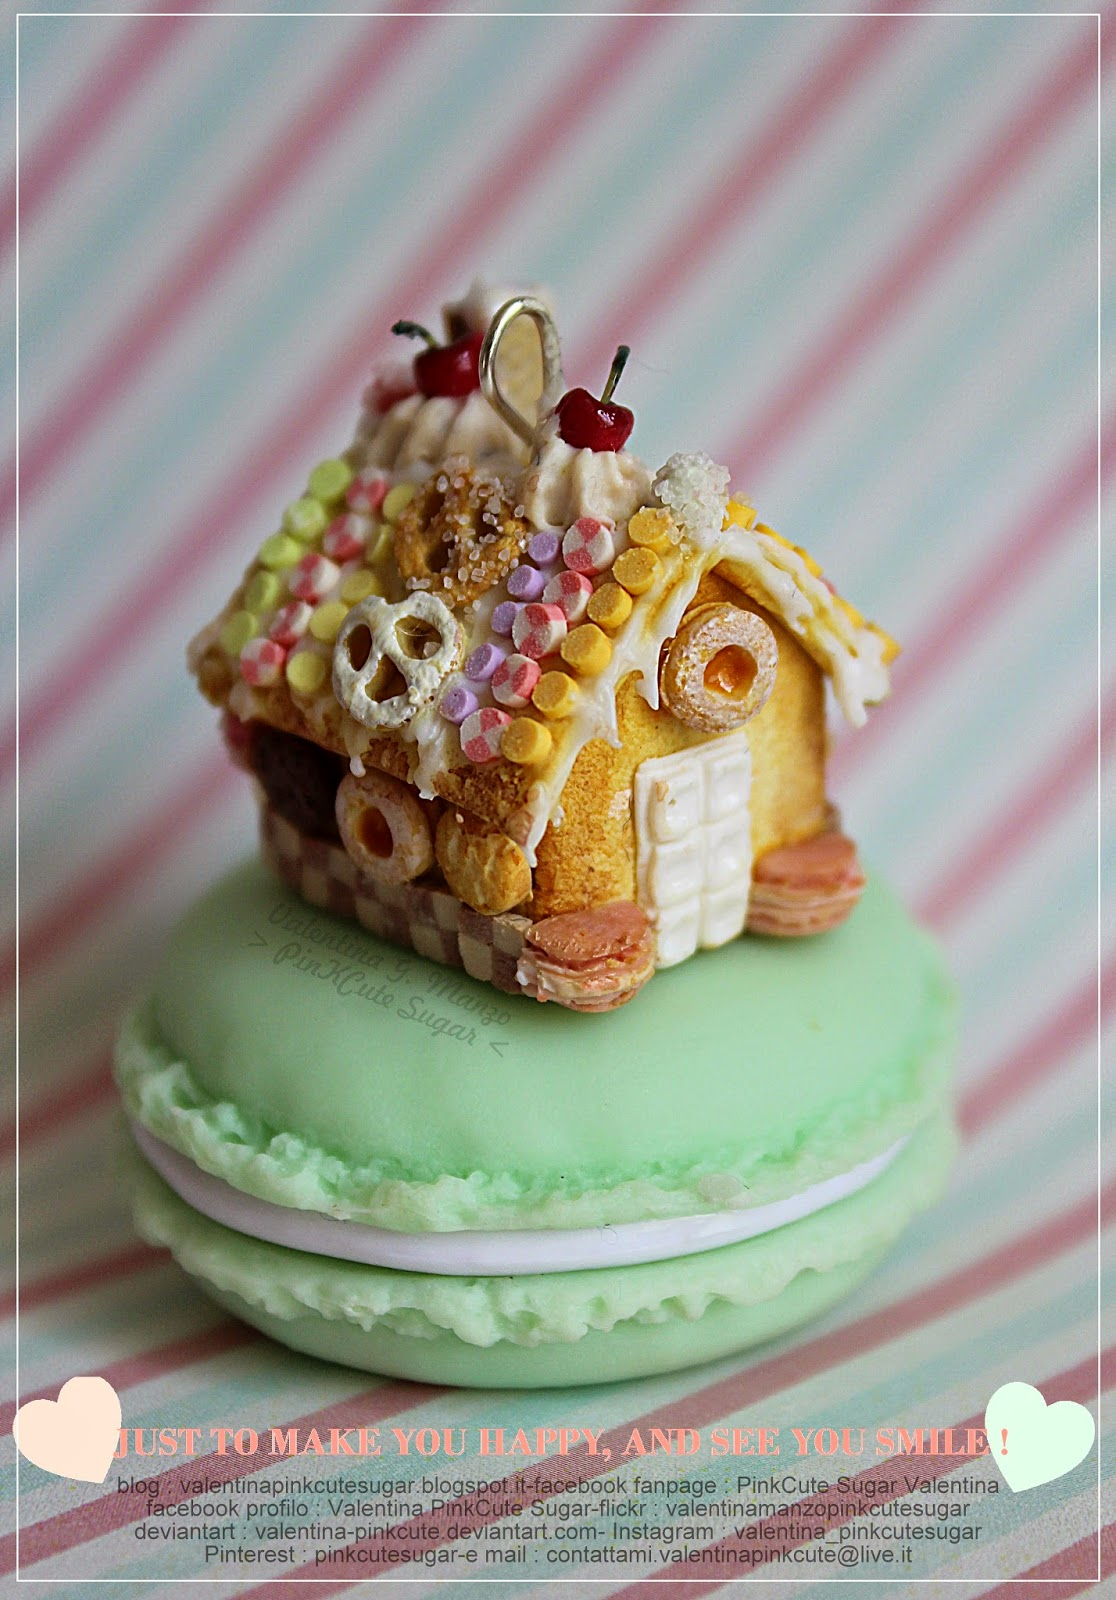 gingerbread house cookie house valentina gaia manzo pinkcute sugar